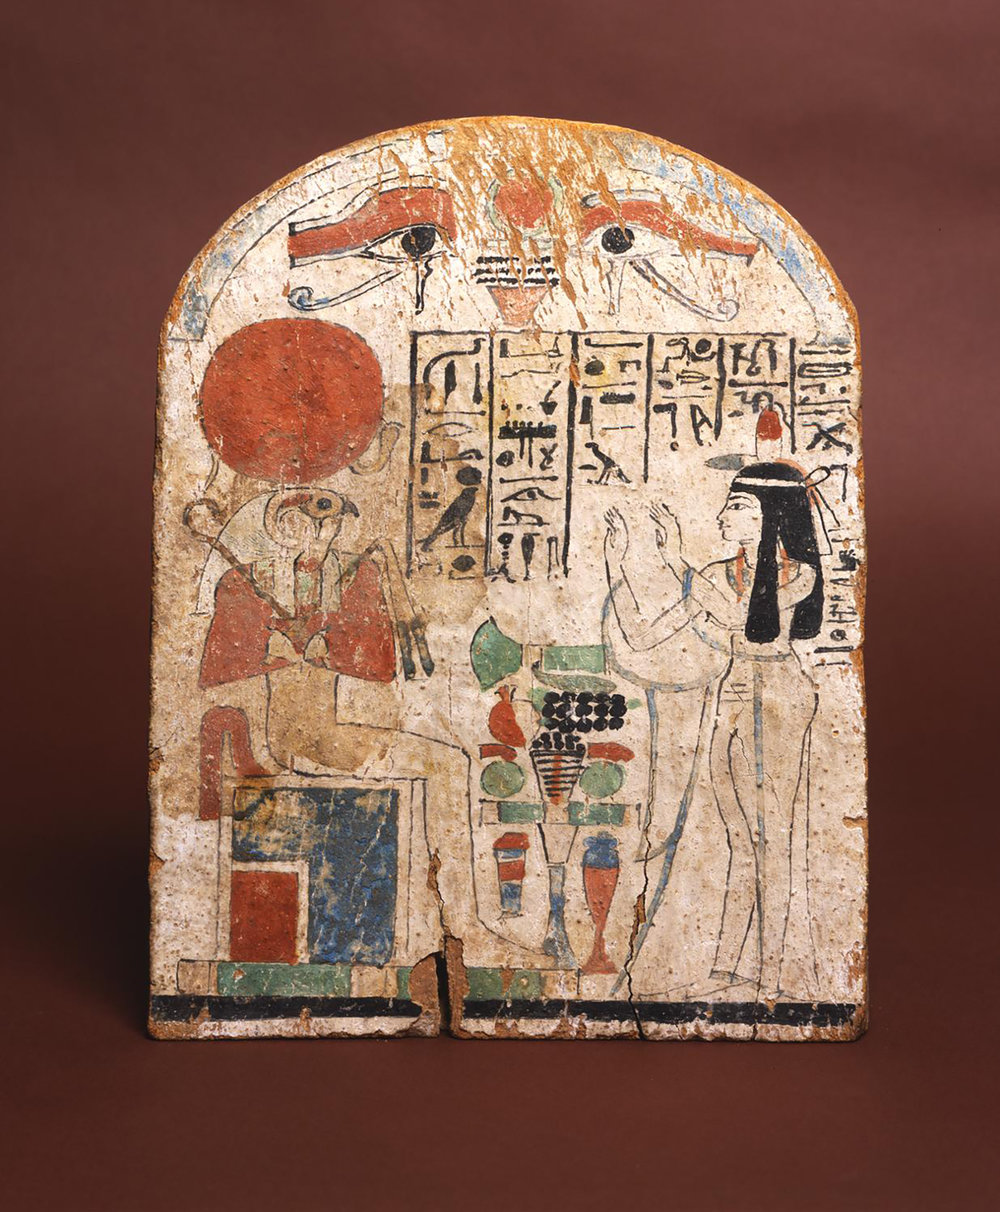 Figure 12:  Re-Horakhty . Tasheryt, the Chantress of Amun, worships the god Re-Horakhty (see Figure 11) on this painted wooden stela. The god is identified by name in the hieroglyphic inscription. Image courtesy of Penn Museum, E2043.